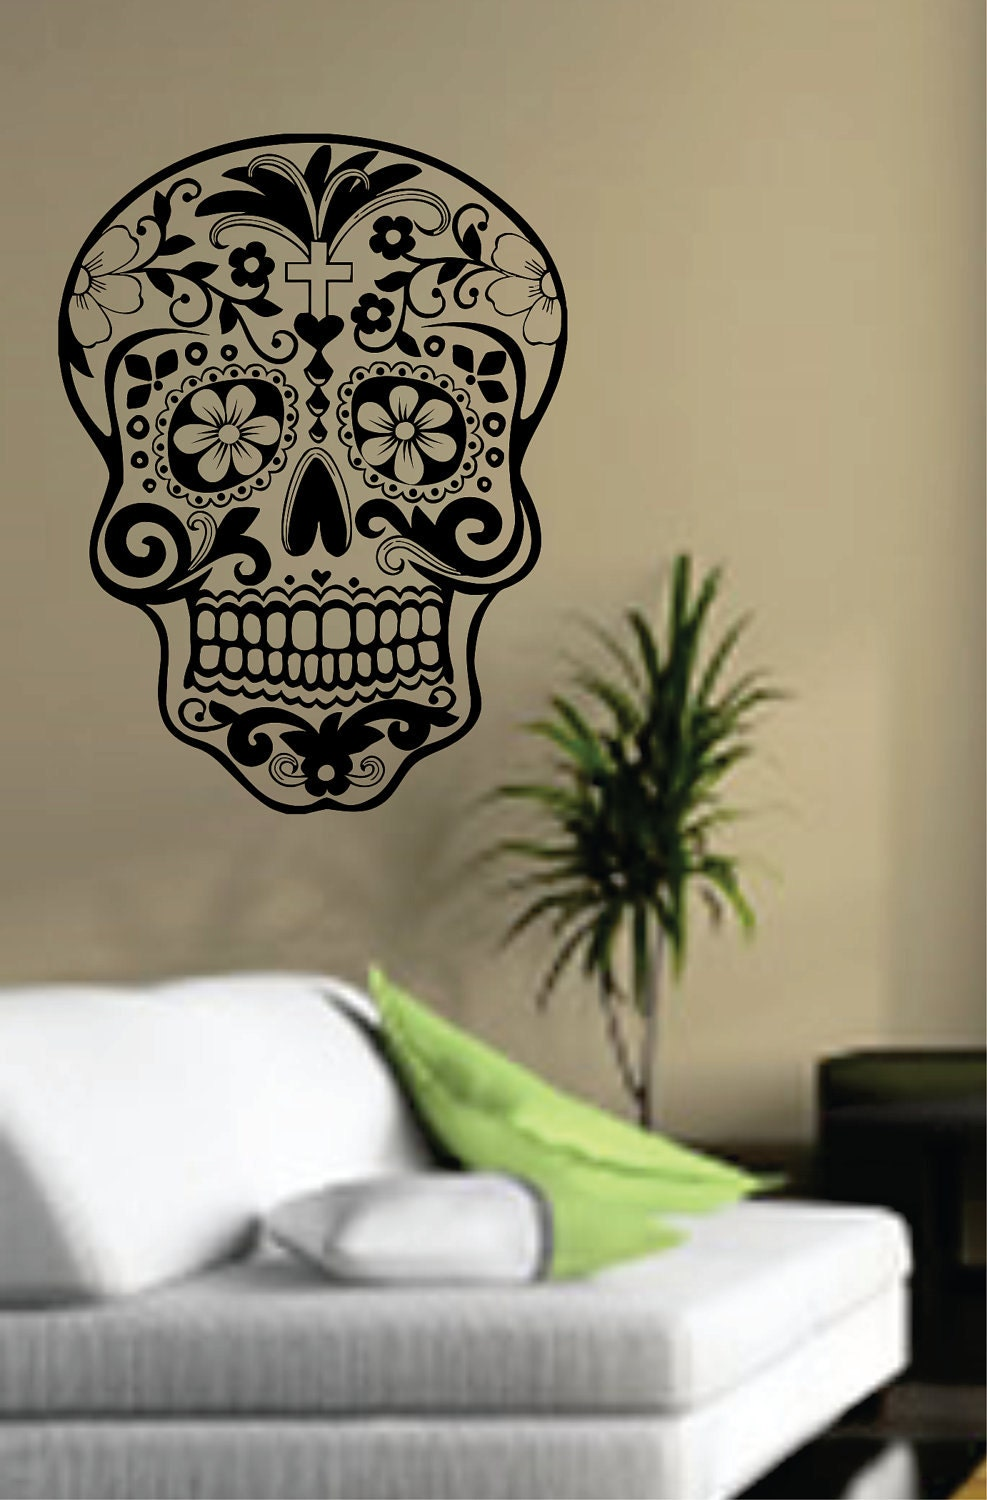 Wall Art Murals Vinyl Decals Stickers : Dabbledown on etsy